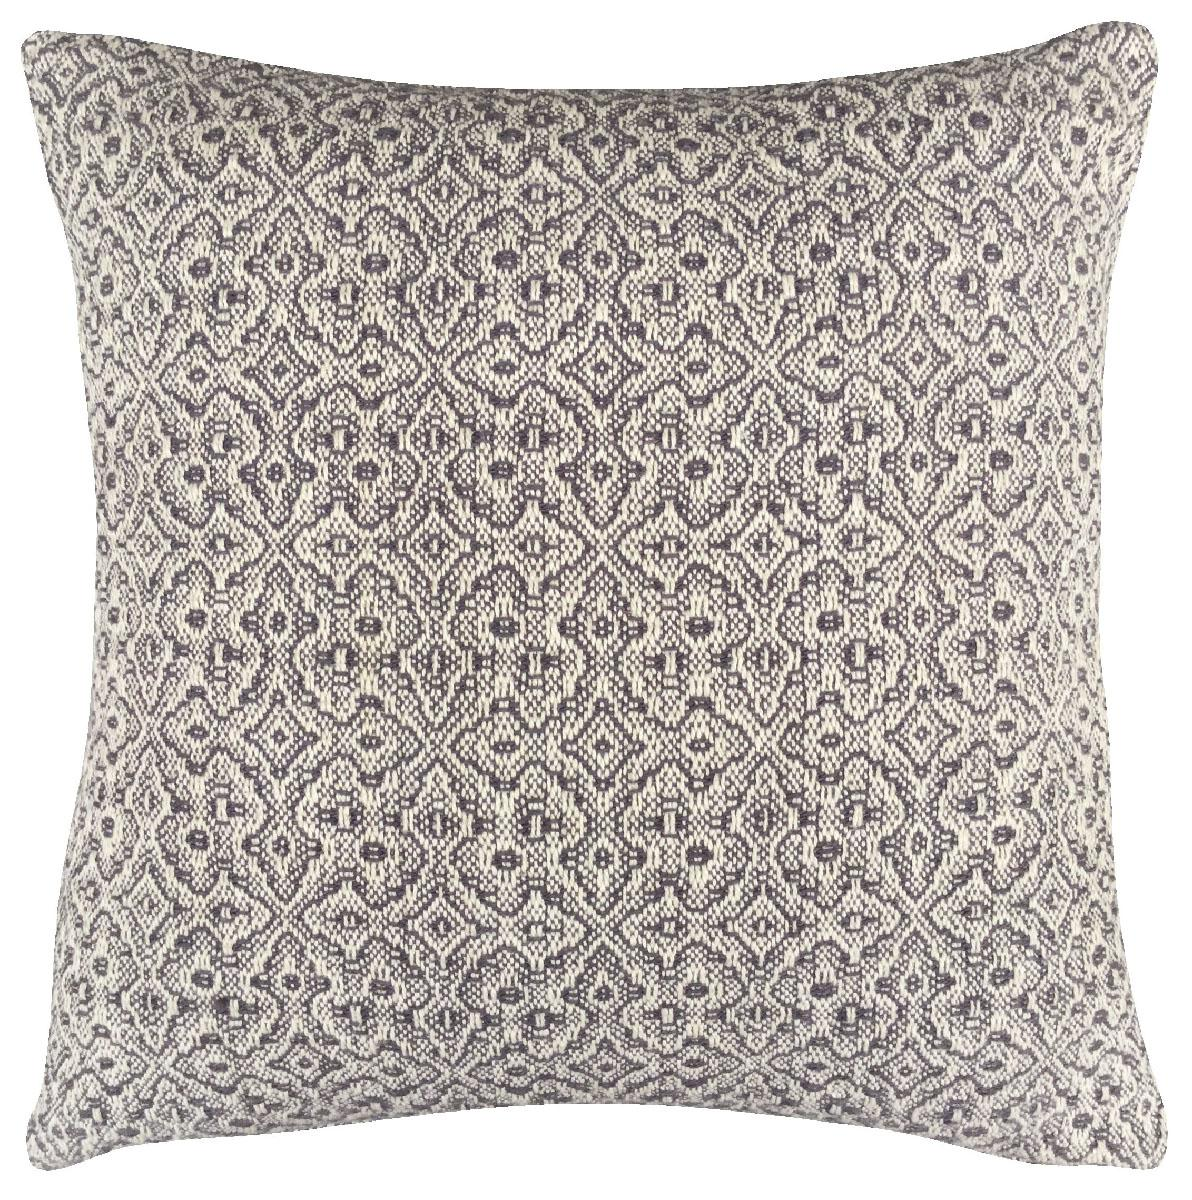 Cushion - 45 cm x 45 cm - Geometrical - Grey / Natural